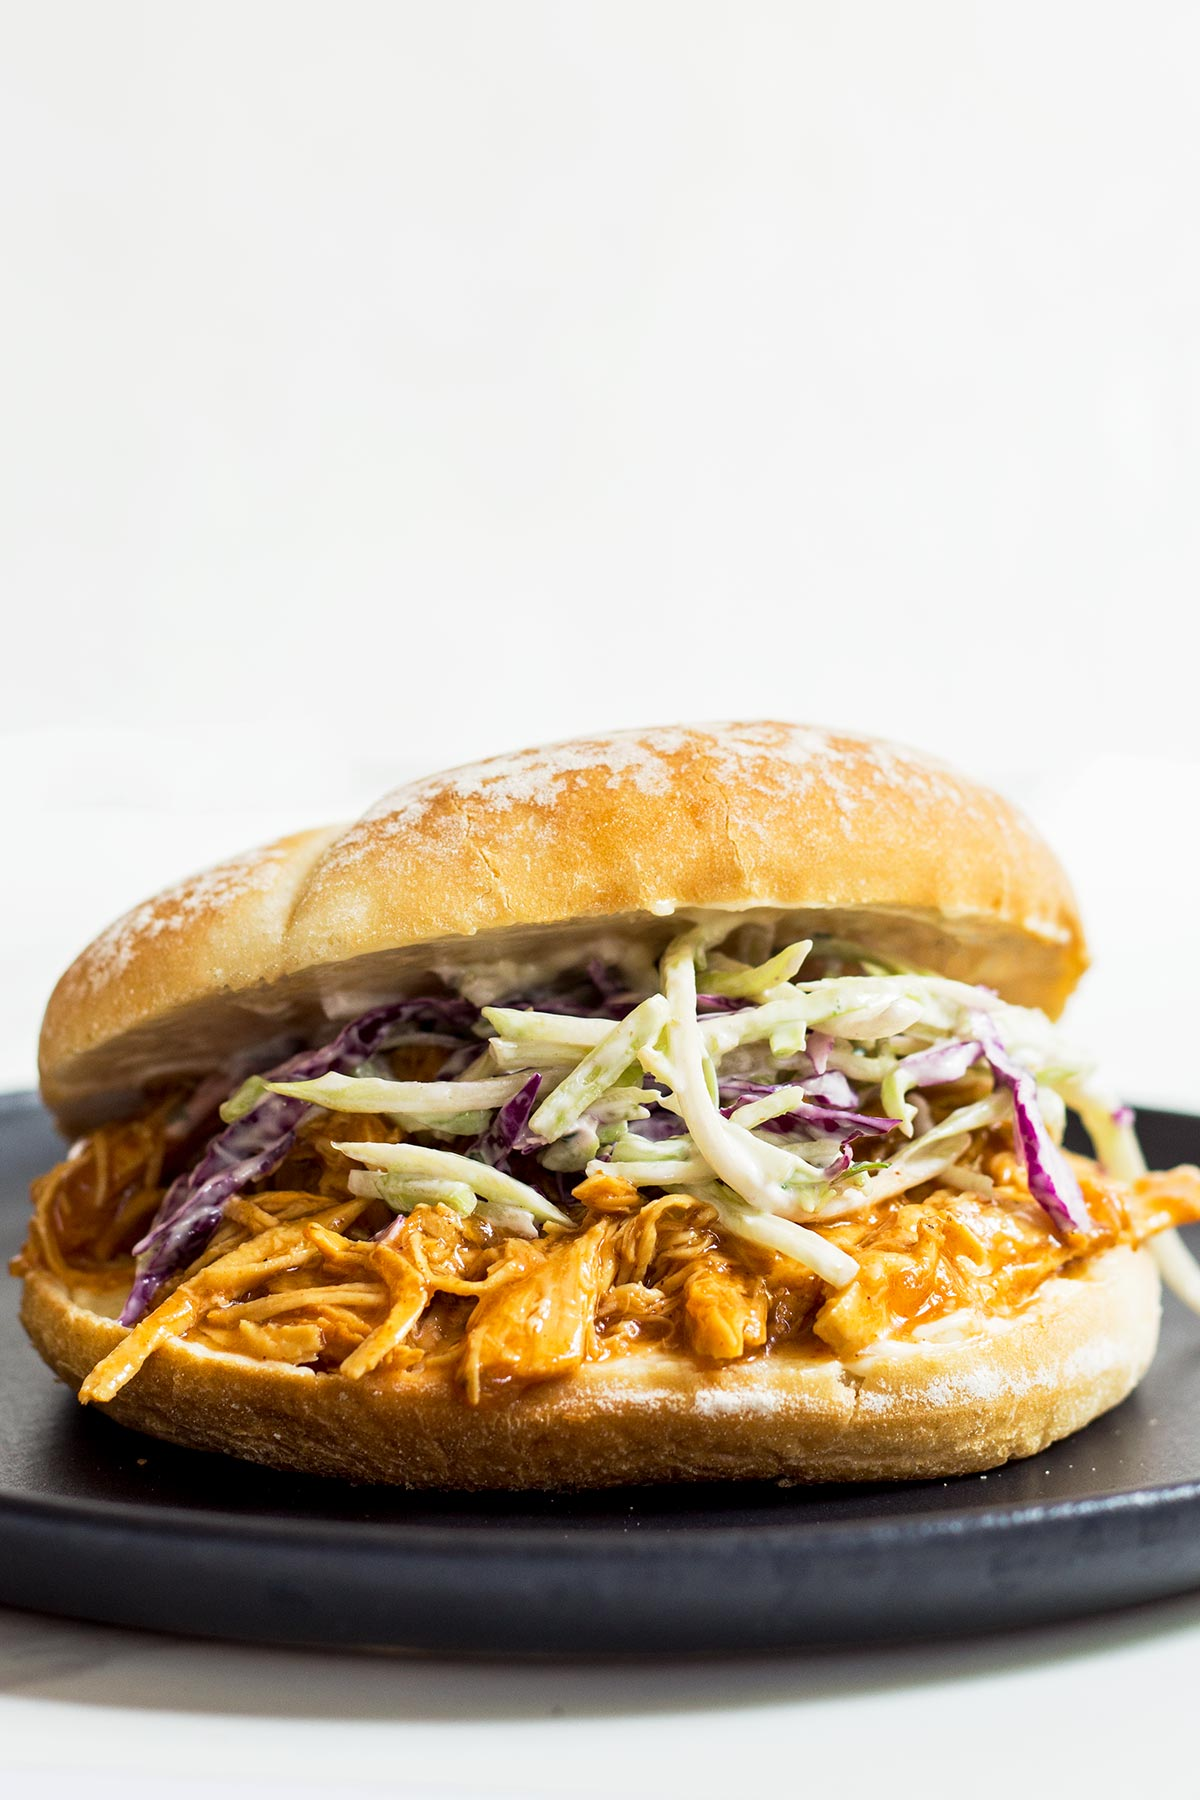 BBQ Shredded Chicken Coleslaw Sandwich